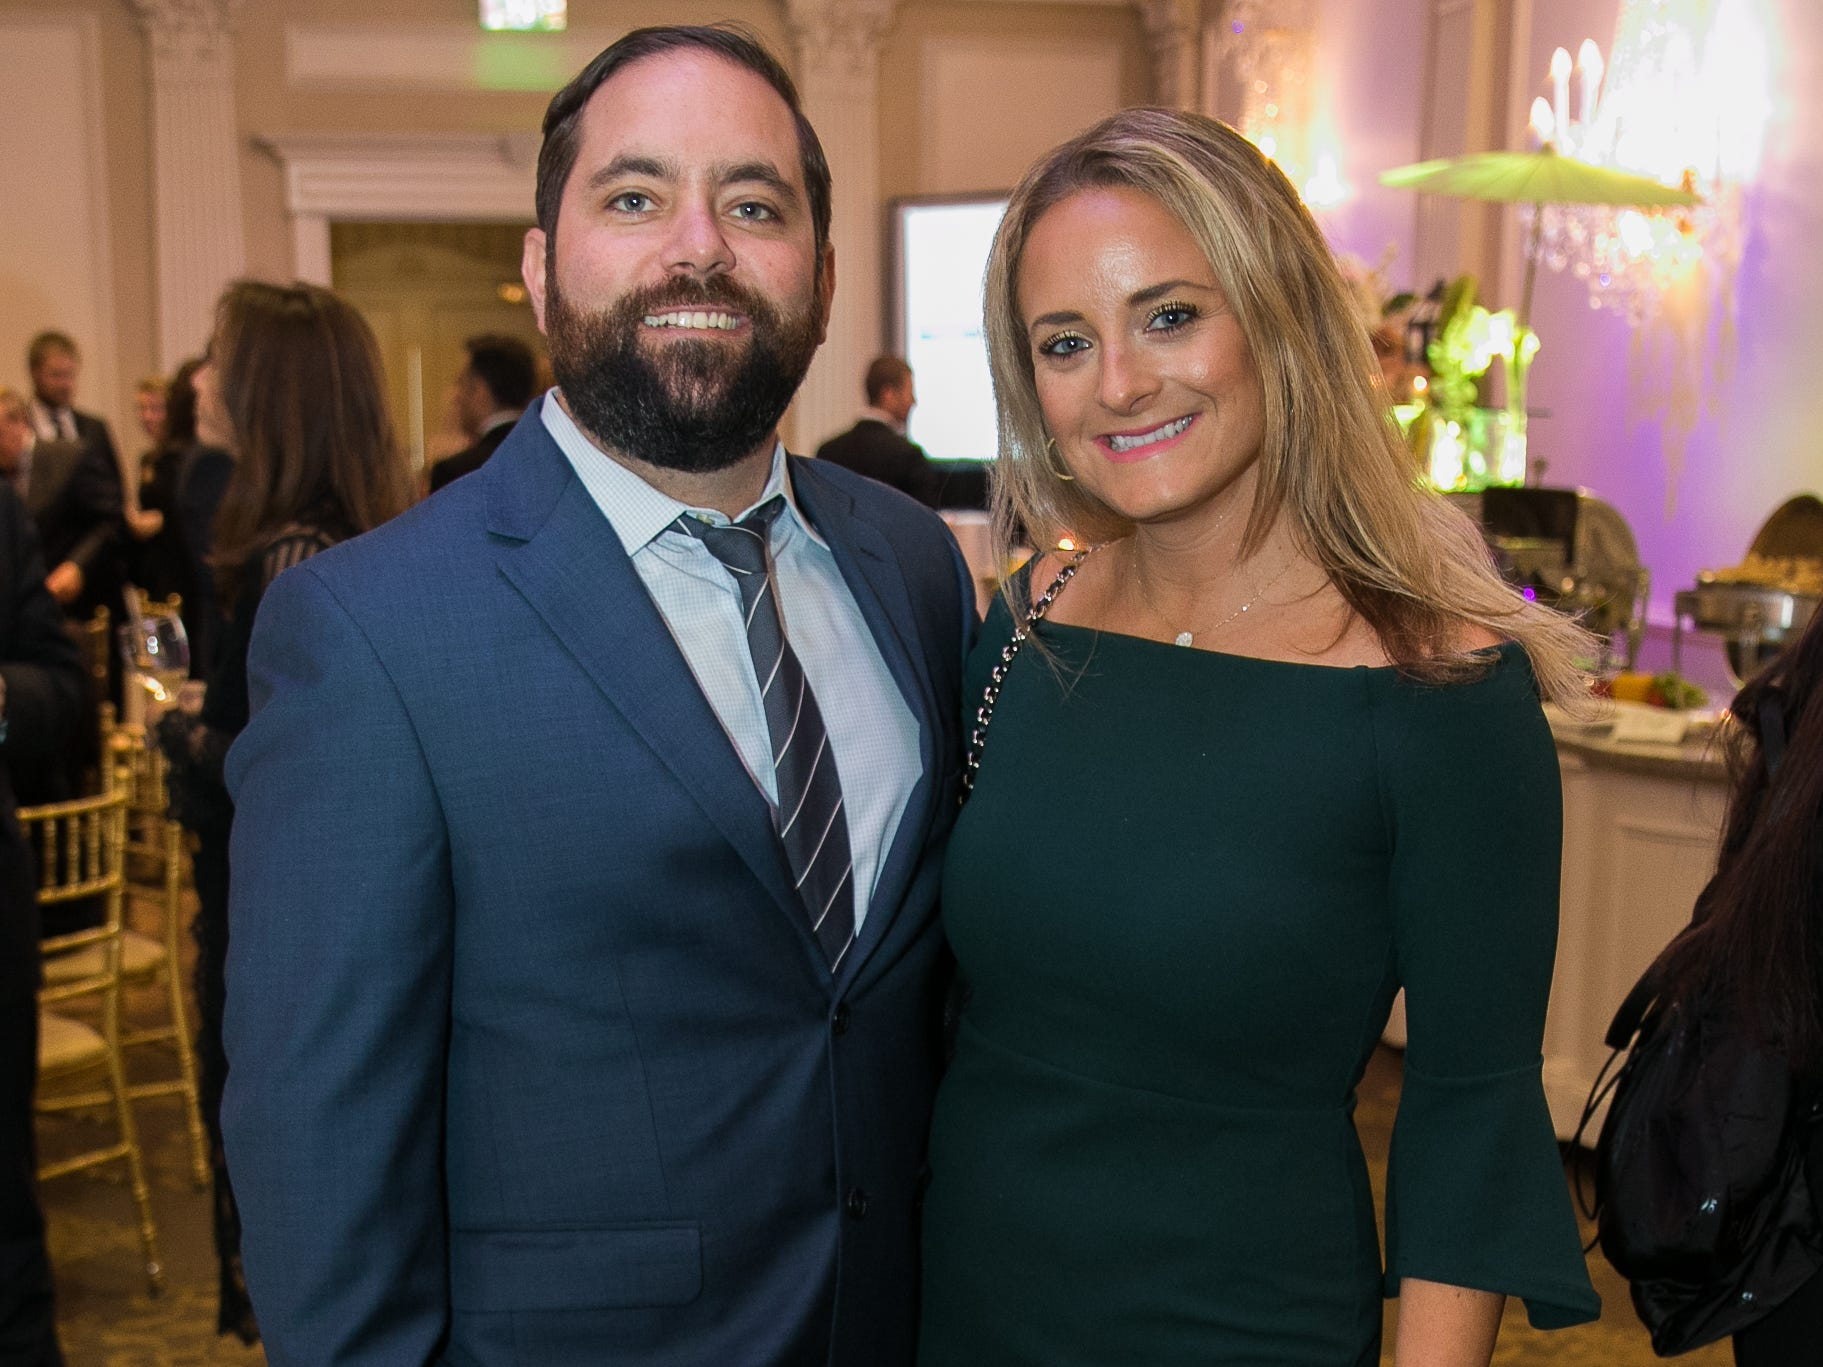 Gavin Daly, Jenna Jacobs. Bergen Family Center celebrated 120 years of service with dinner and a silent auction at Th e Rockleigh Country Club.11/1/2018